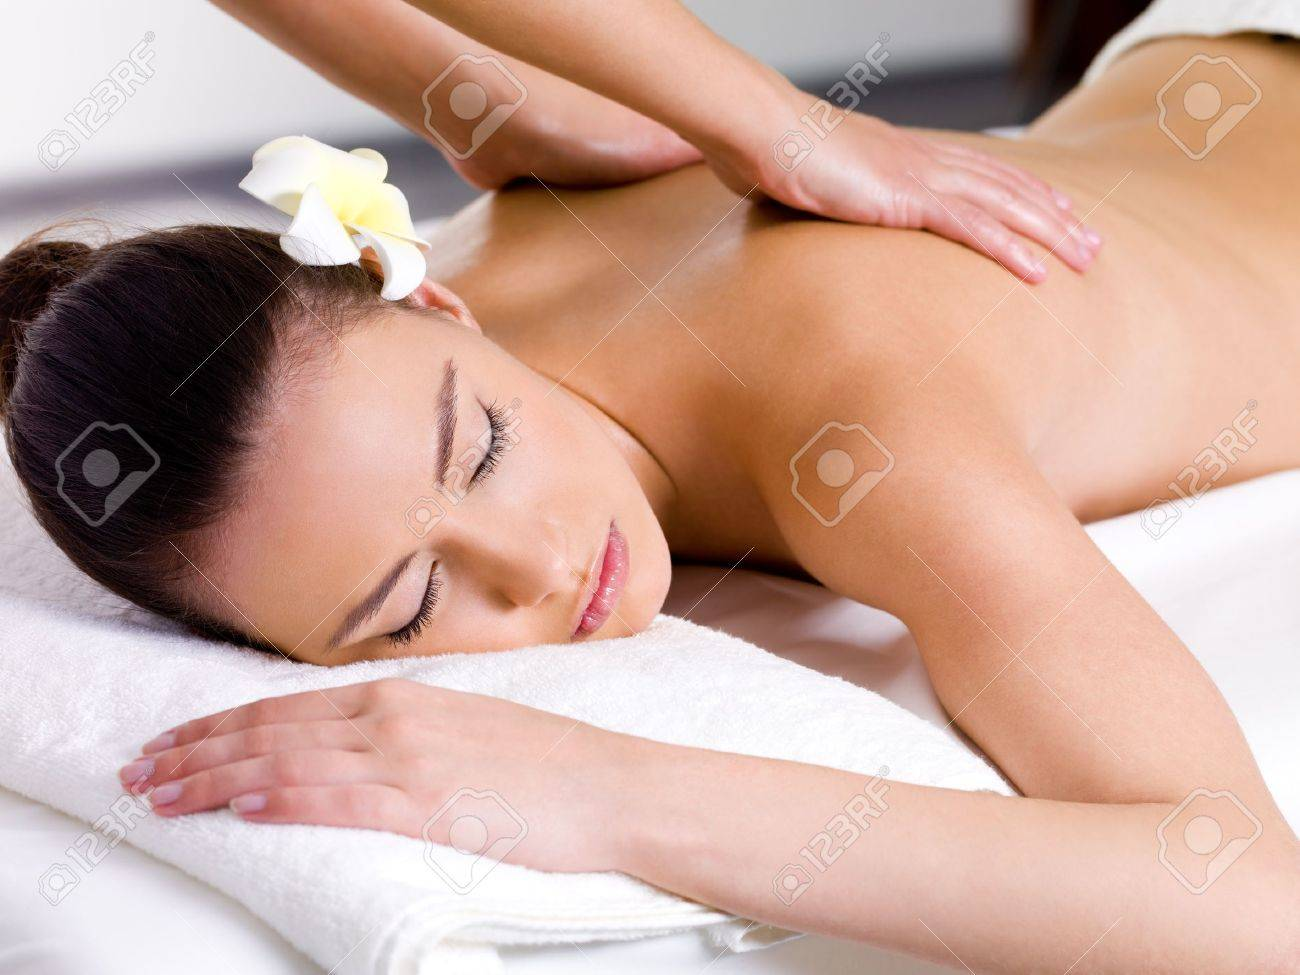 Beautiful woman having relaxing massage on her back in spa salon Stock Photo - 9195367